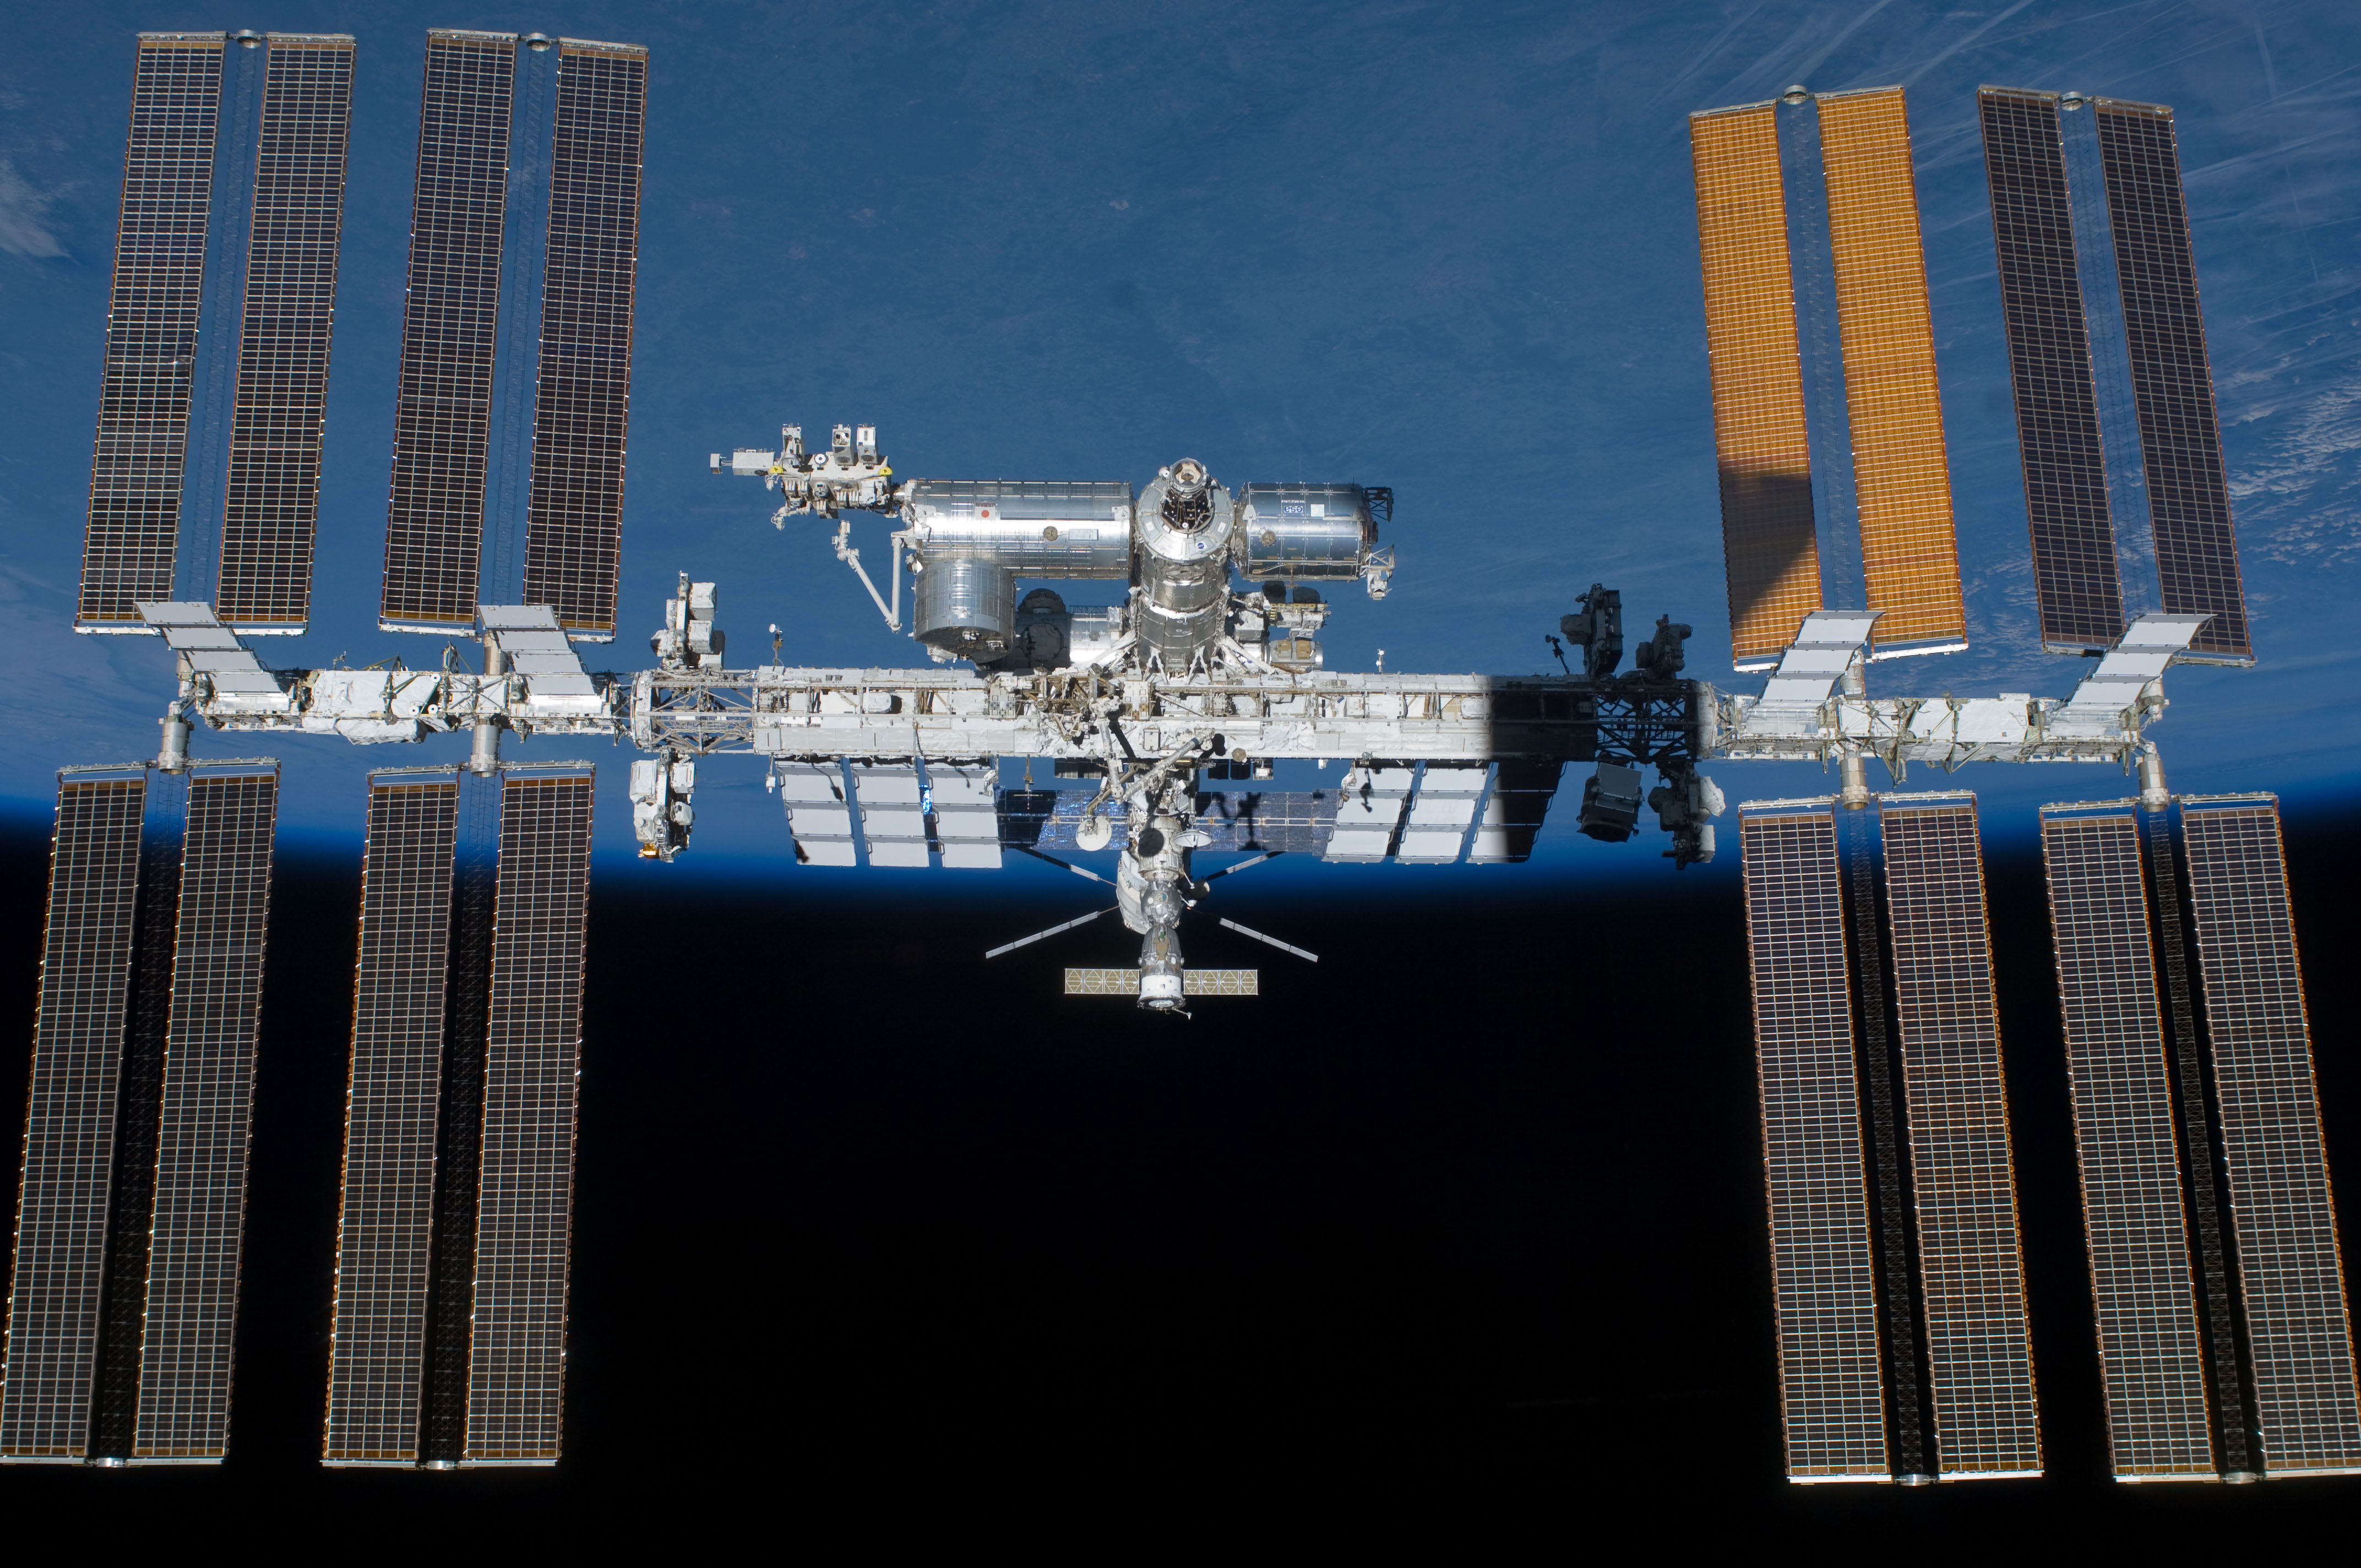 Astronauts repairing air leak on International Space Station